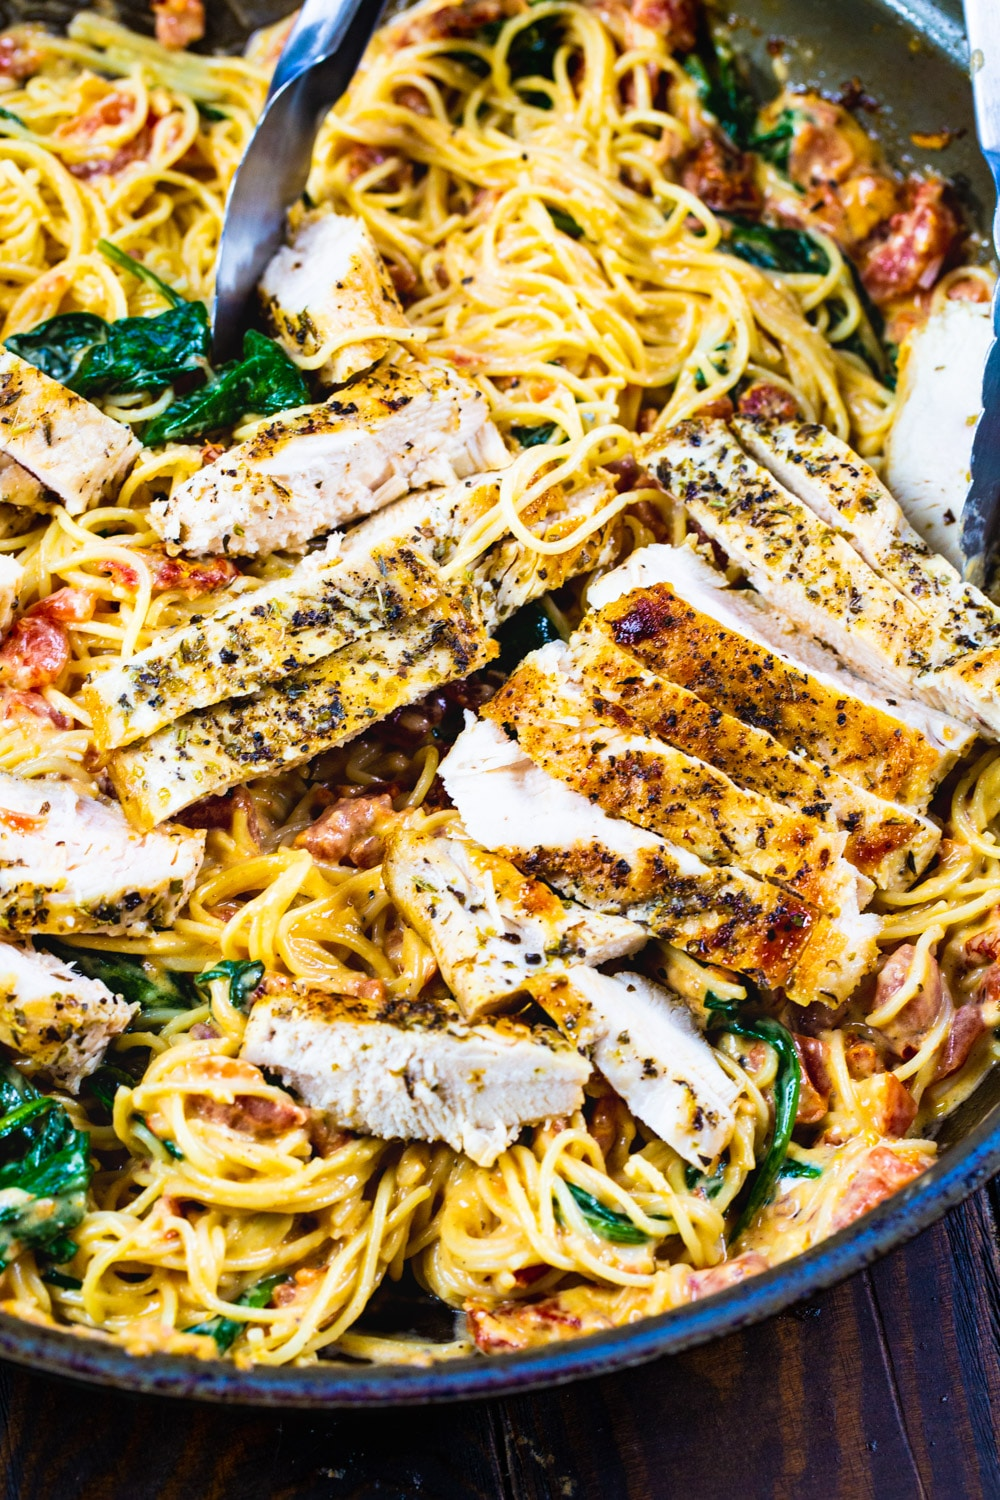 Tuscan-Style Pasta with chicken in a large skillet.